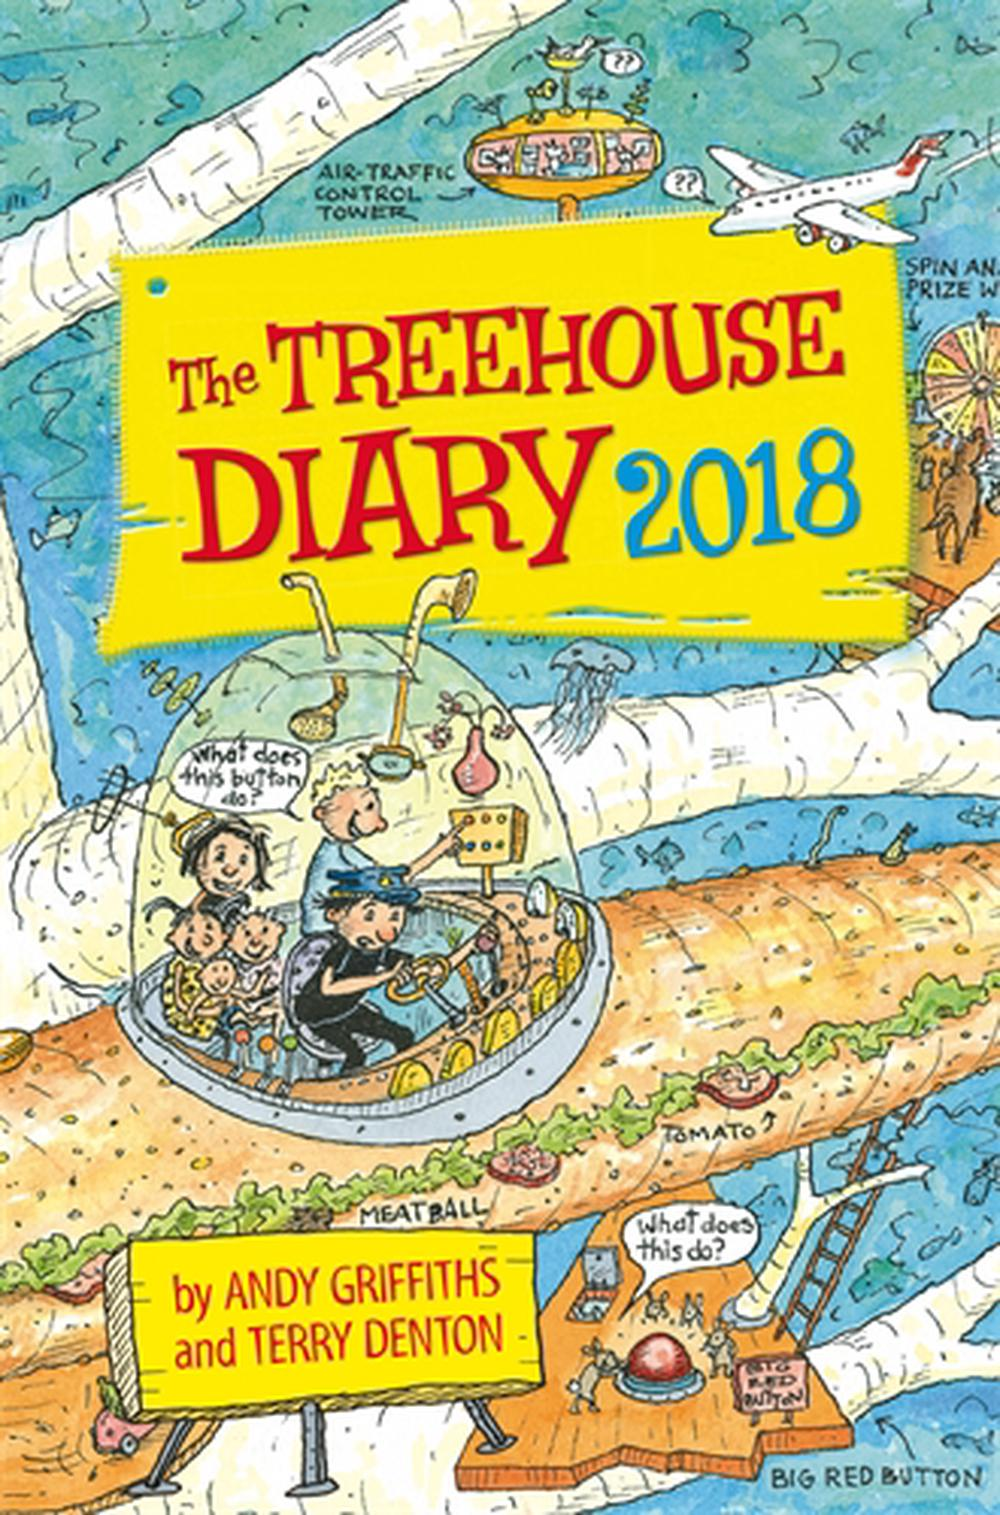 The 91 Storey TreehouseDiary